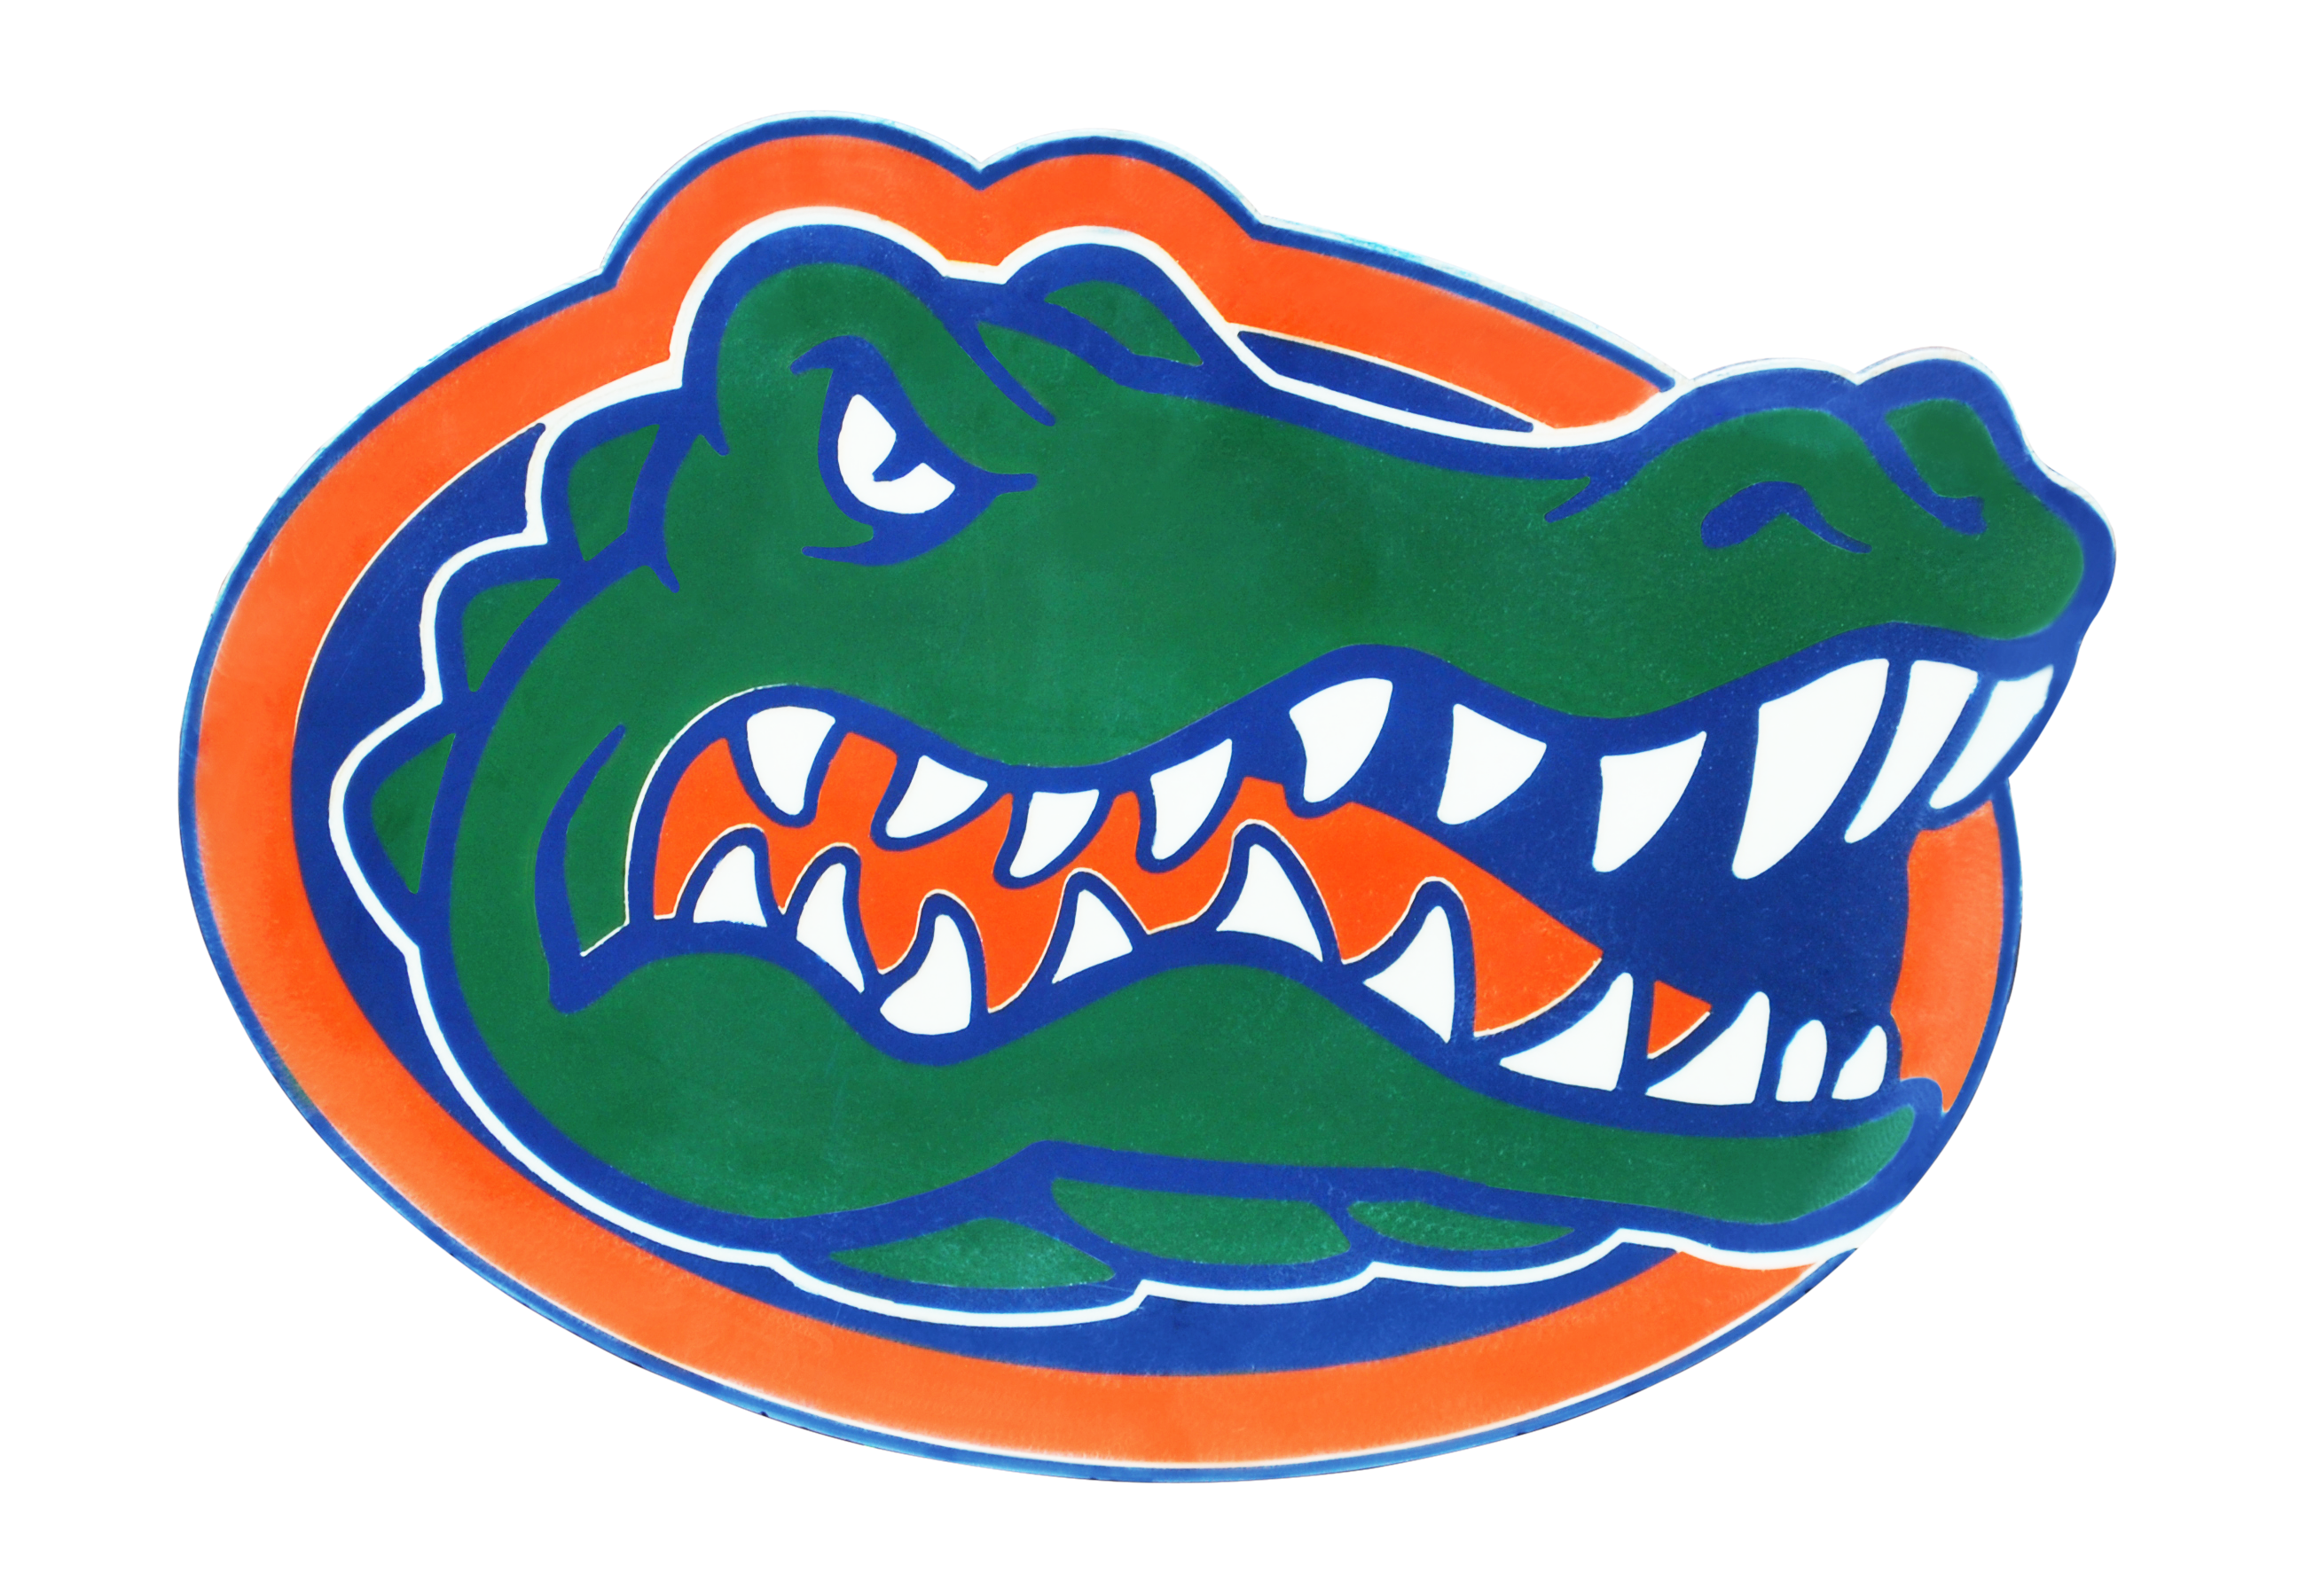 Symbol meaning history and. Florida gators logo png picture freeuse